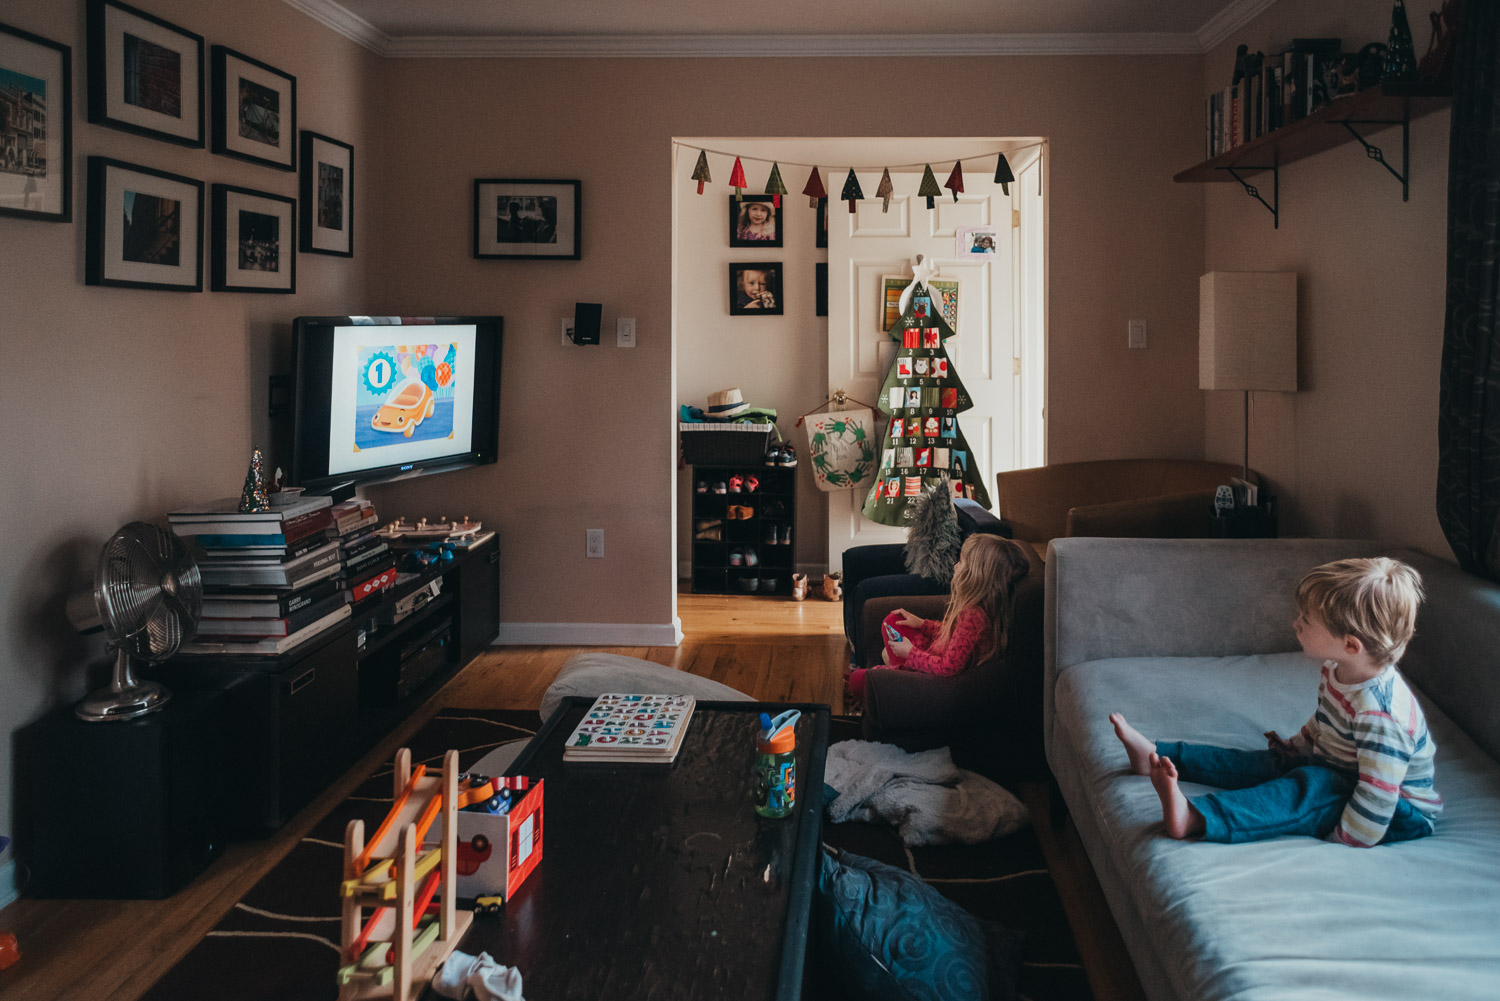 Kids watching TV in a living room decorated for Christmas.